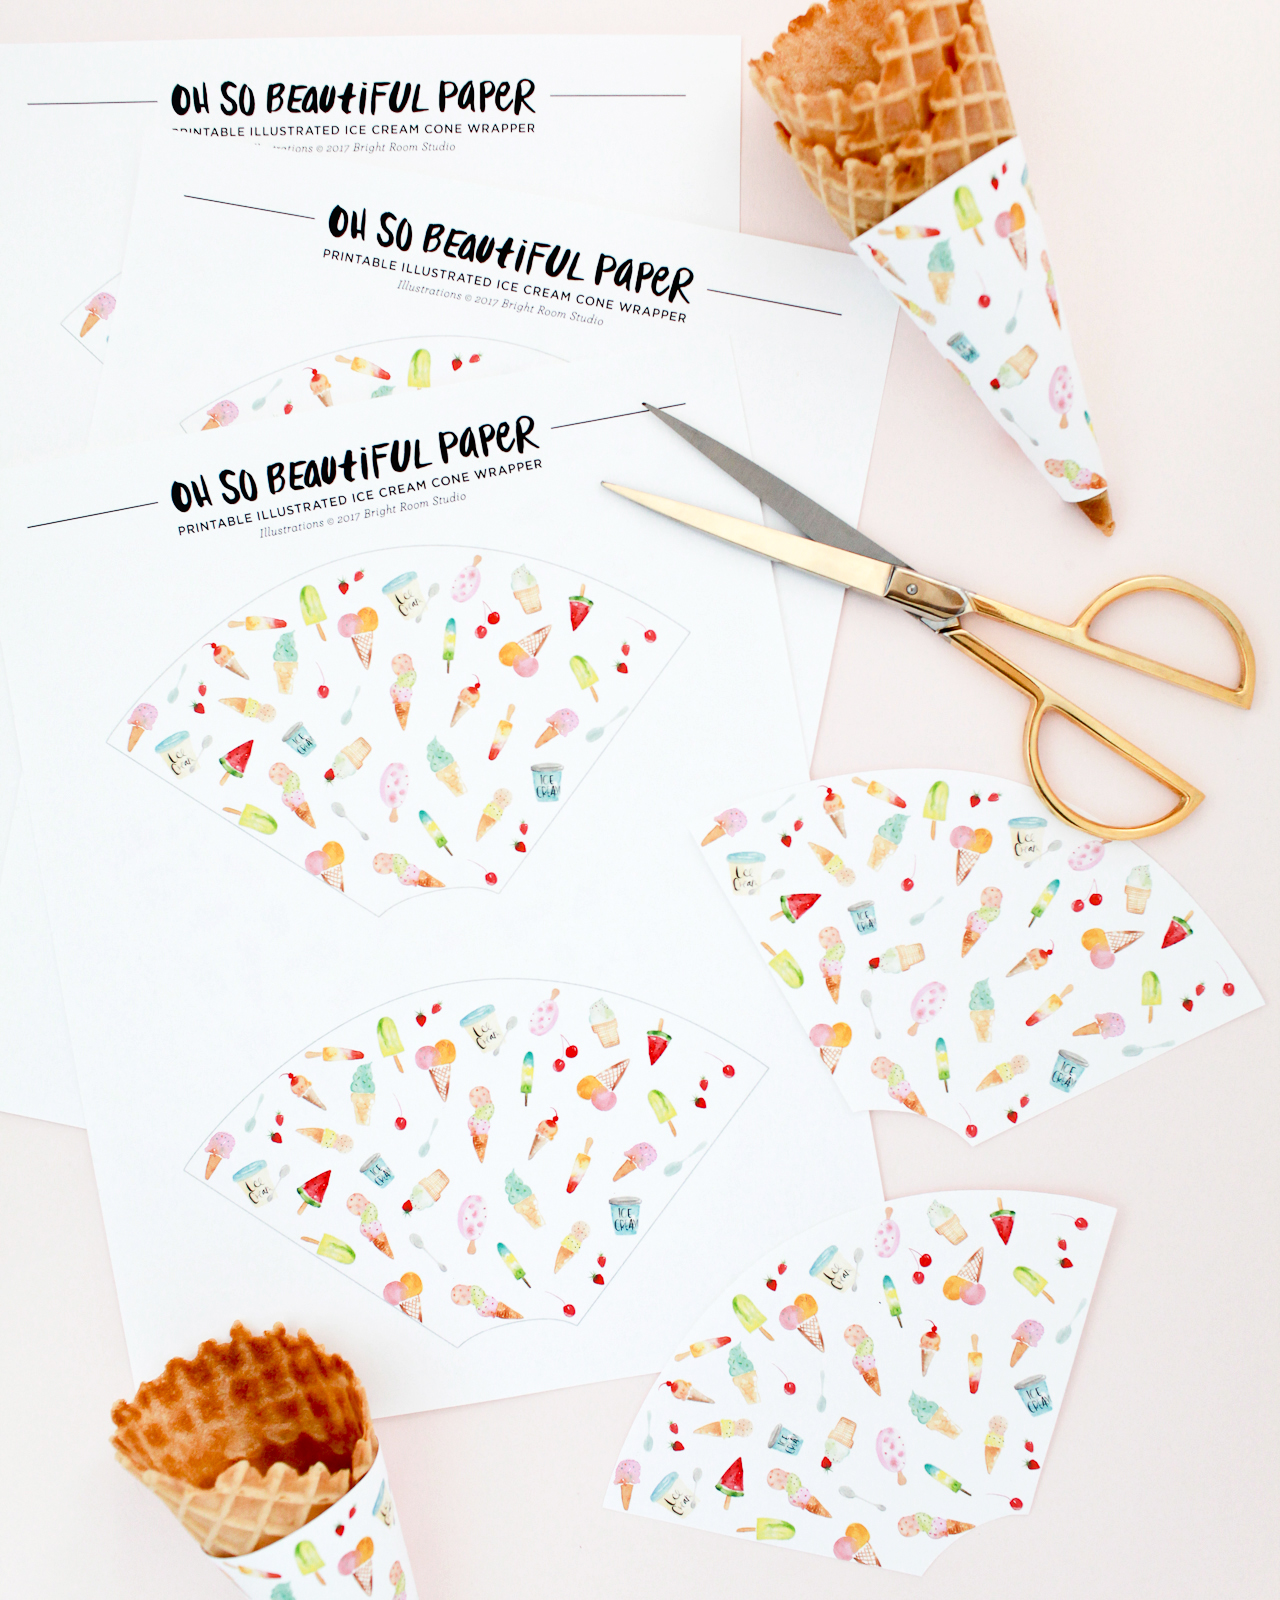 Printable Illustrated Ice Cream Cone Wrappers